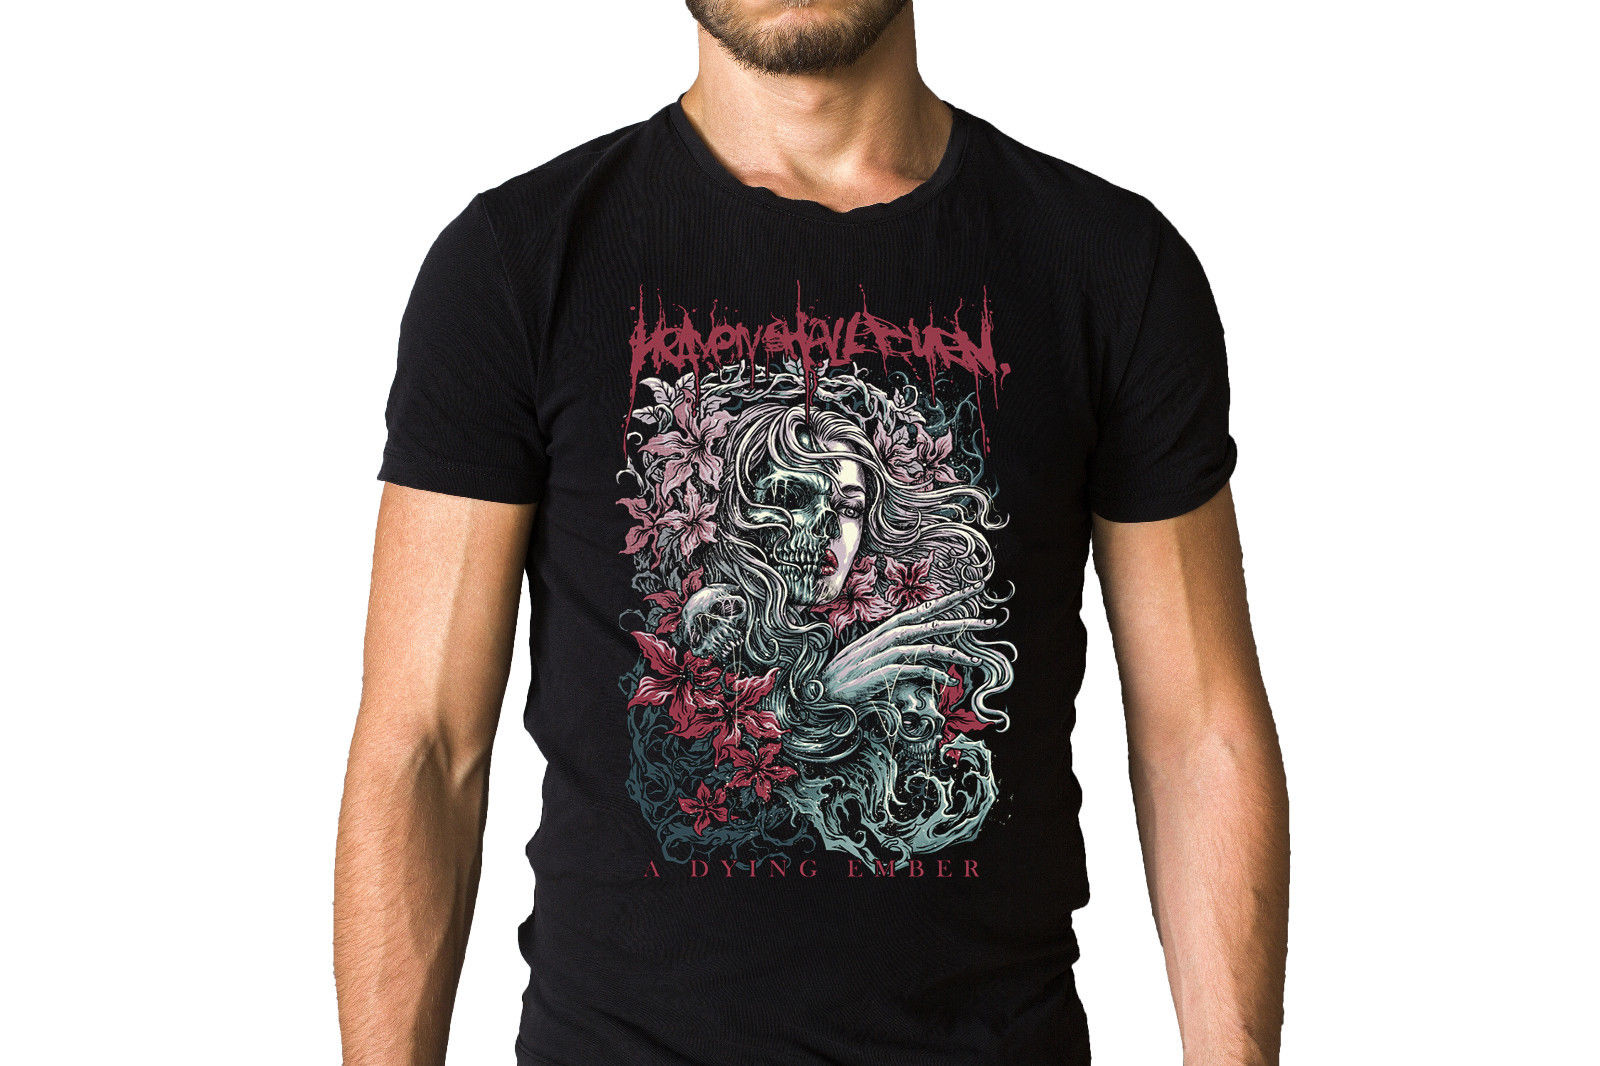 Heaven Shall Burn A Dying Ember Black T-Shirt Casual Plus Size T-Shirts Hip Hop Style Tops Tee S-3Xl Men Summer T Shirt